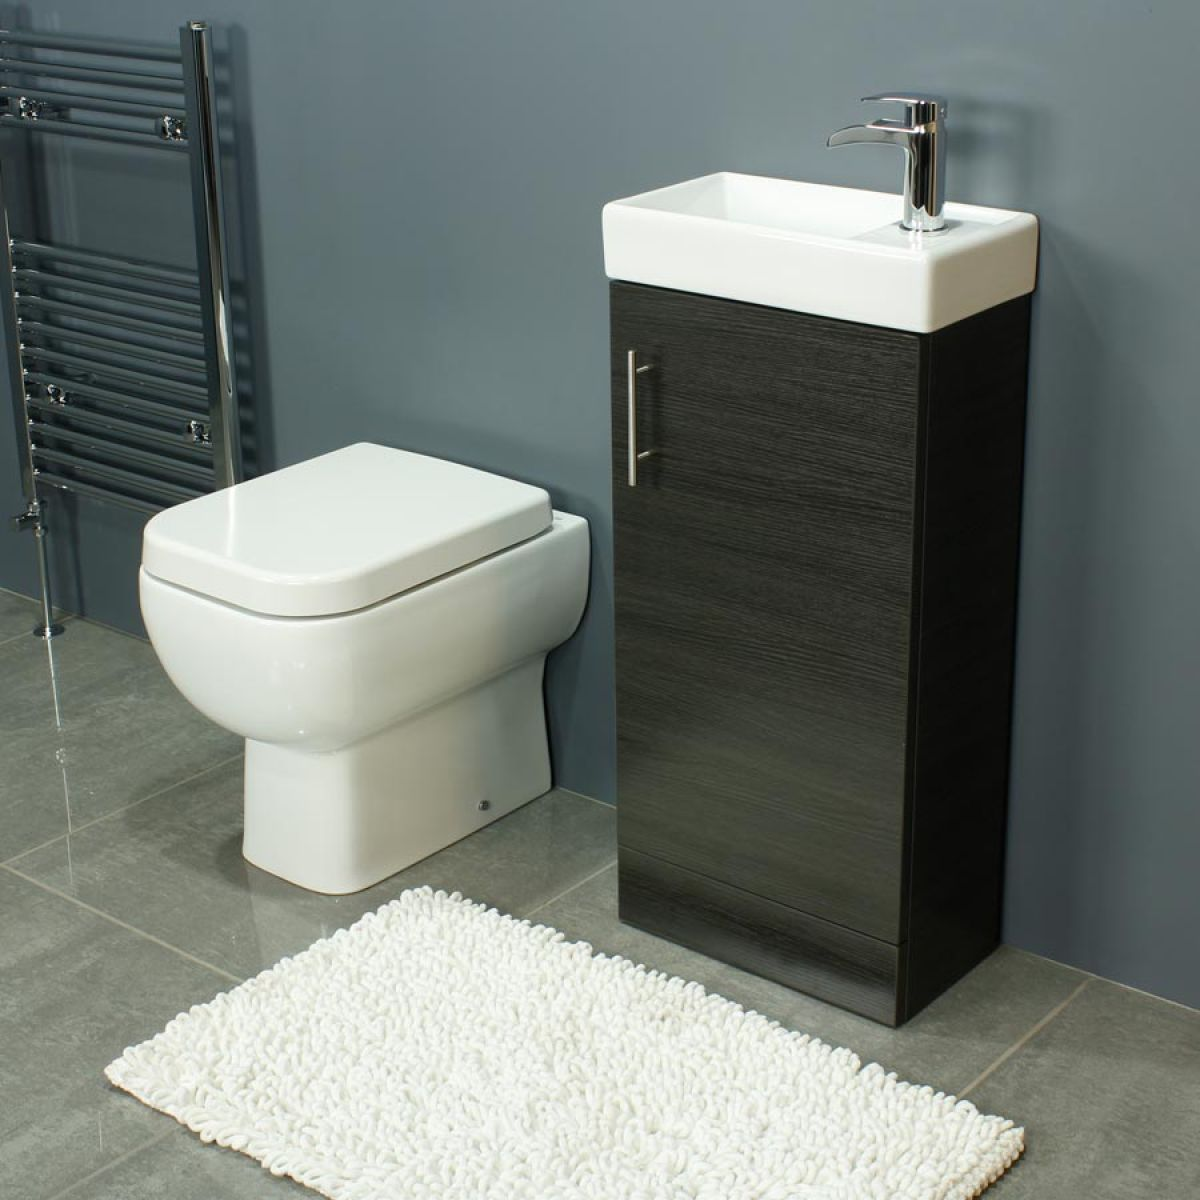 RAK Series 600 Back To Wall Toilet and 400 Series Walnut Vanity Unit